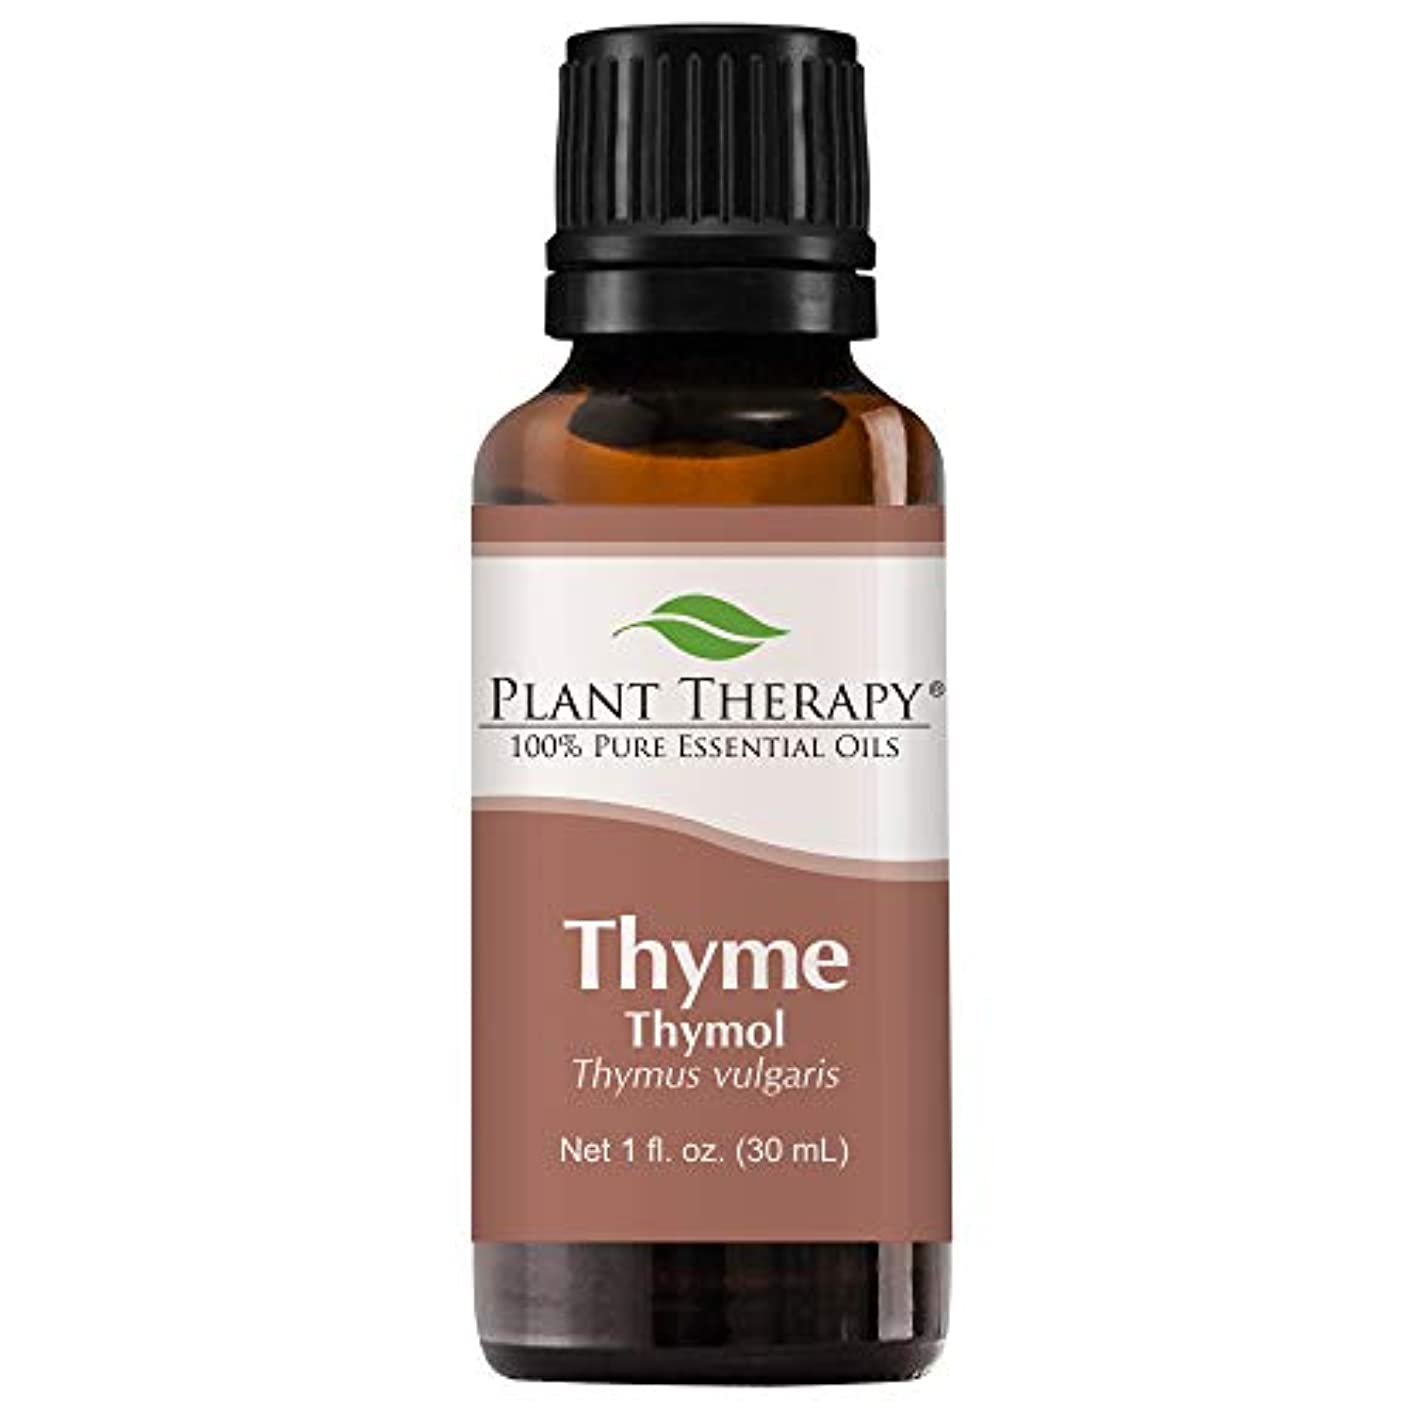 非常に怒っています撤退突進Plant Therapy Thyme Thymol Essential Oil. 100% Pure, Undiluted, Therapeutic Grade. 30 ml (1 oz). by Plant Therapy Essential Oils